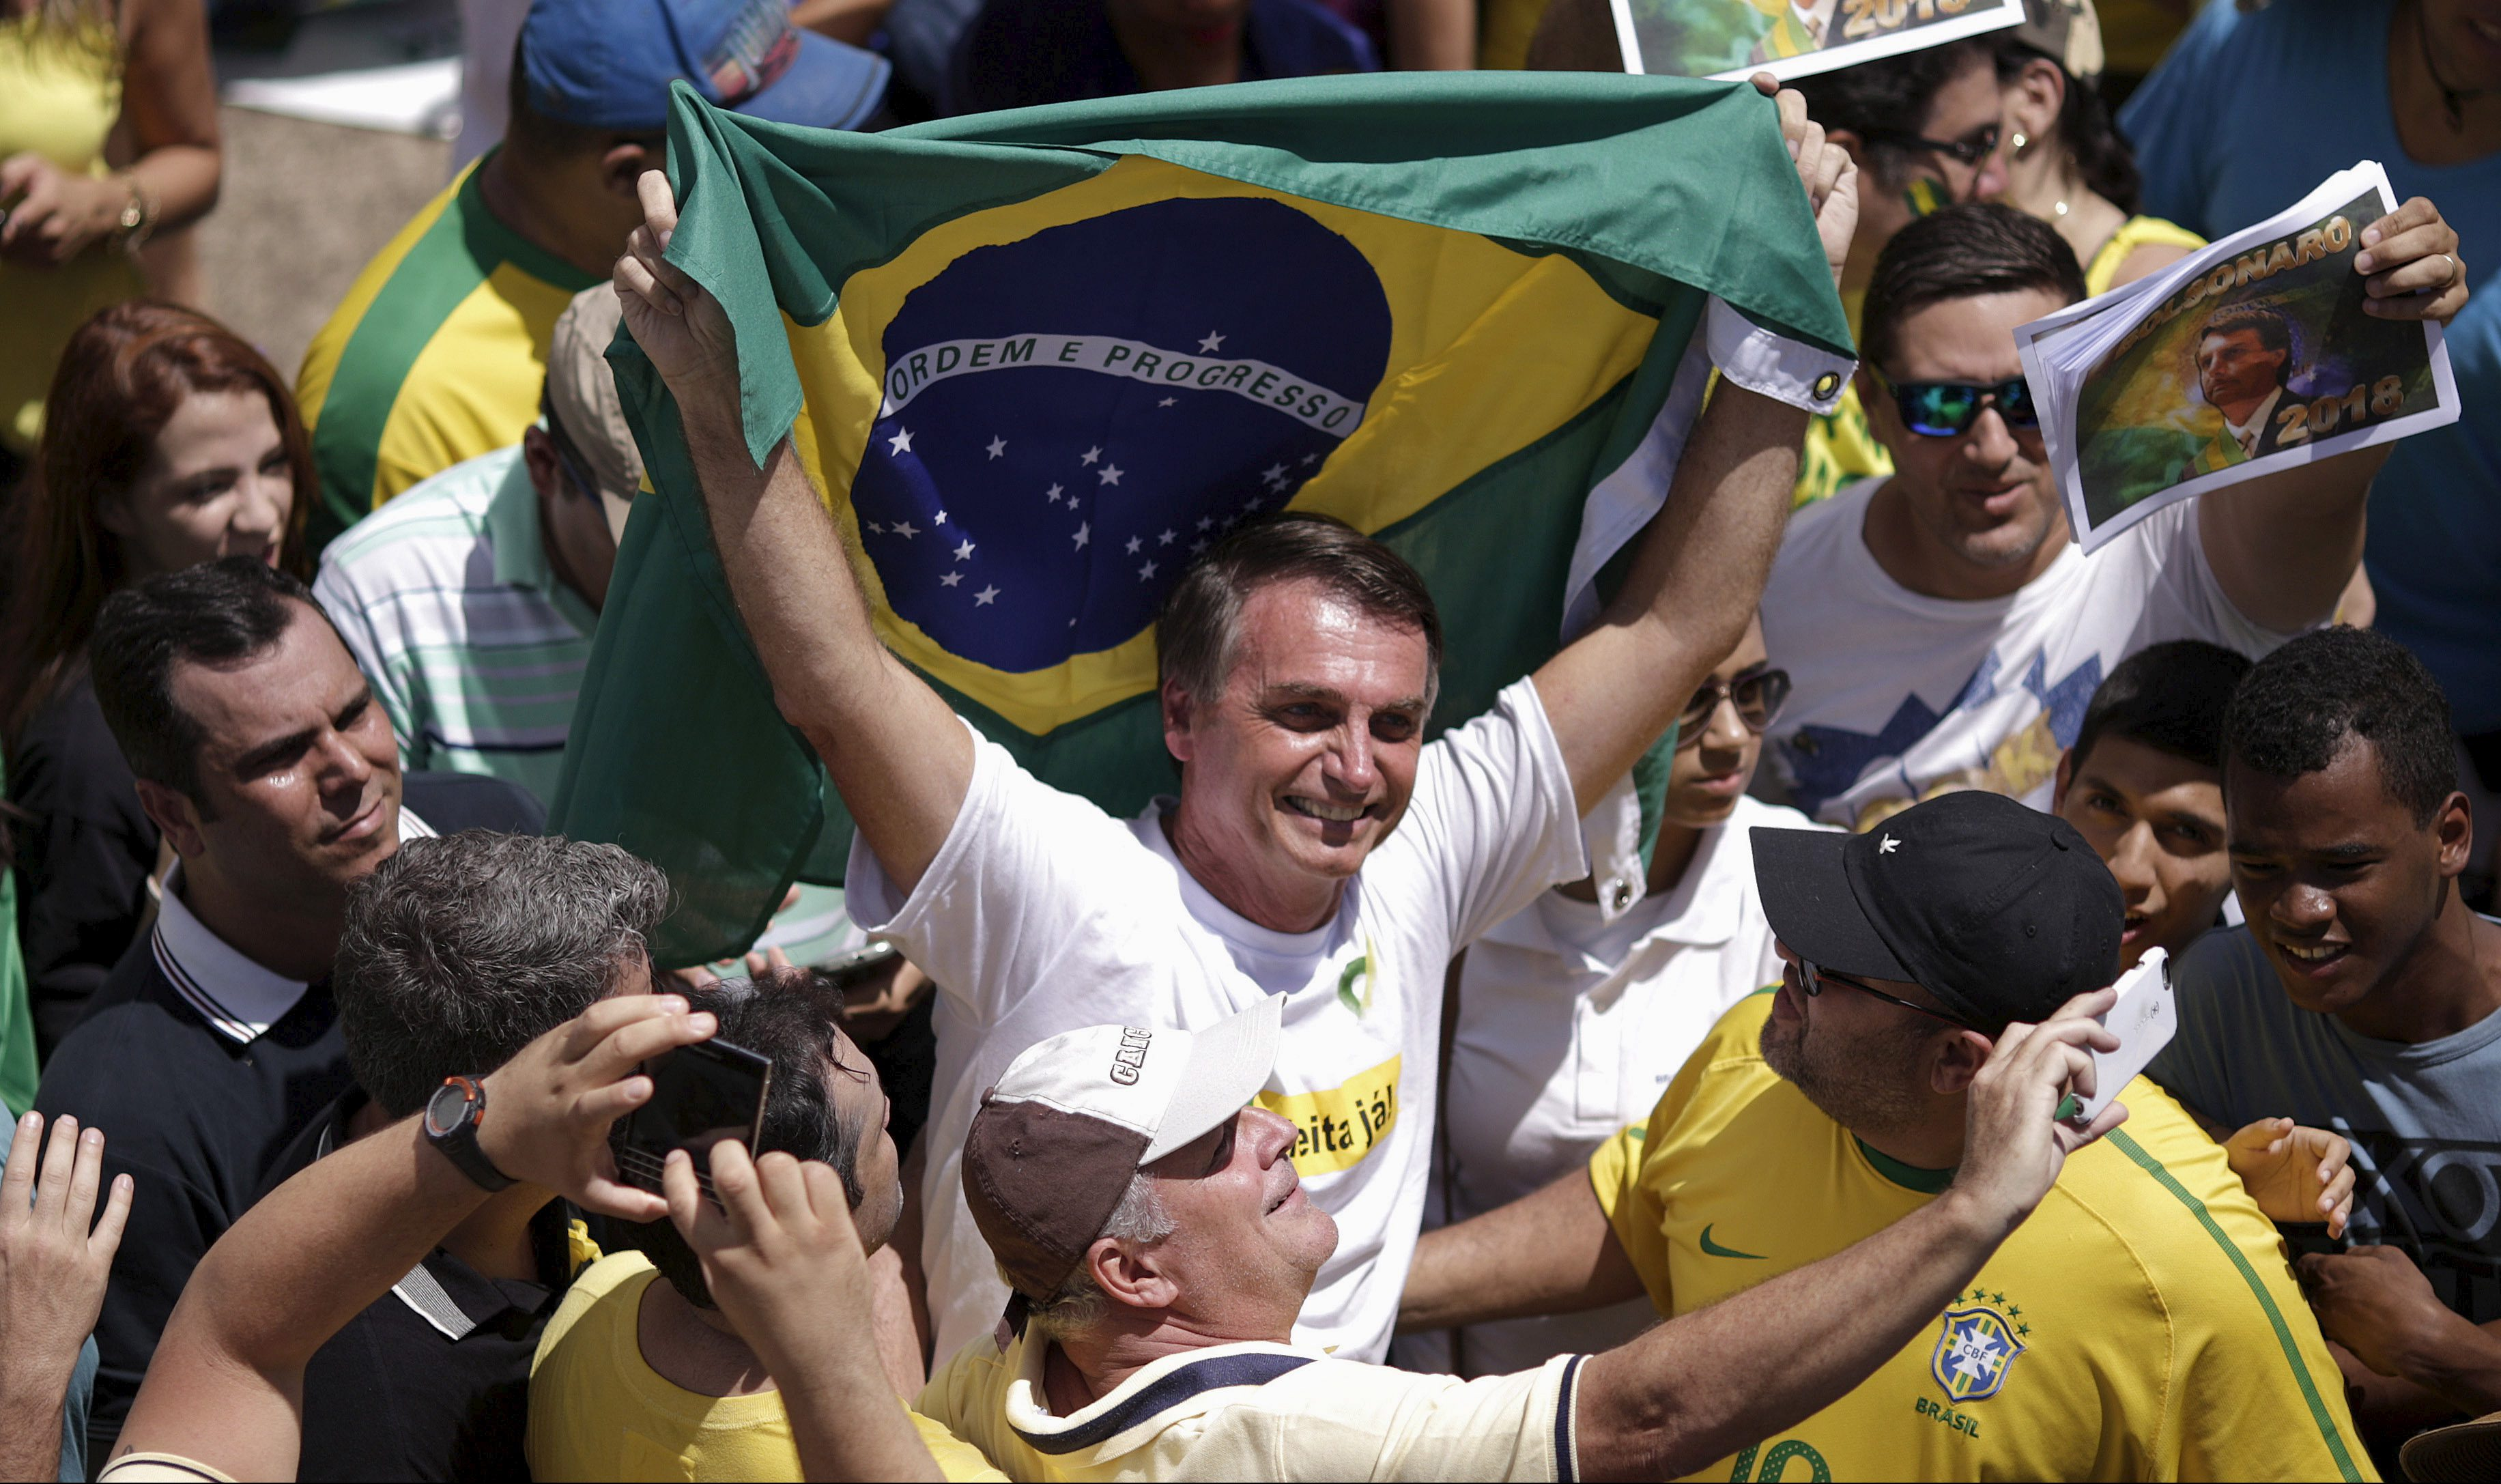 Congressman Jair Bolsonaro holds a Brazilian flag during a protest against Brazil's President Dilma Rousseff, part of nationwide protests calling for her impeachment, in Brasilia, Brazil, March 13, 2016. REUTERS/Ueslei Marcelino - RTX28Z8C